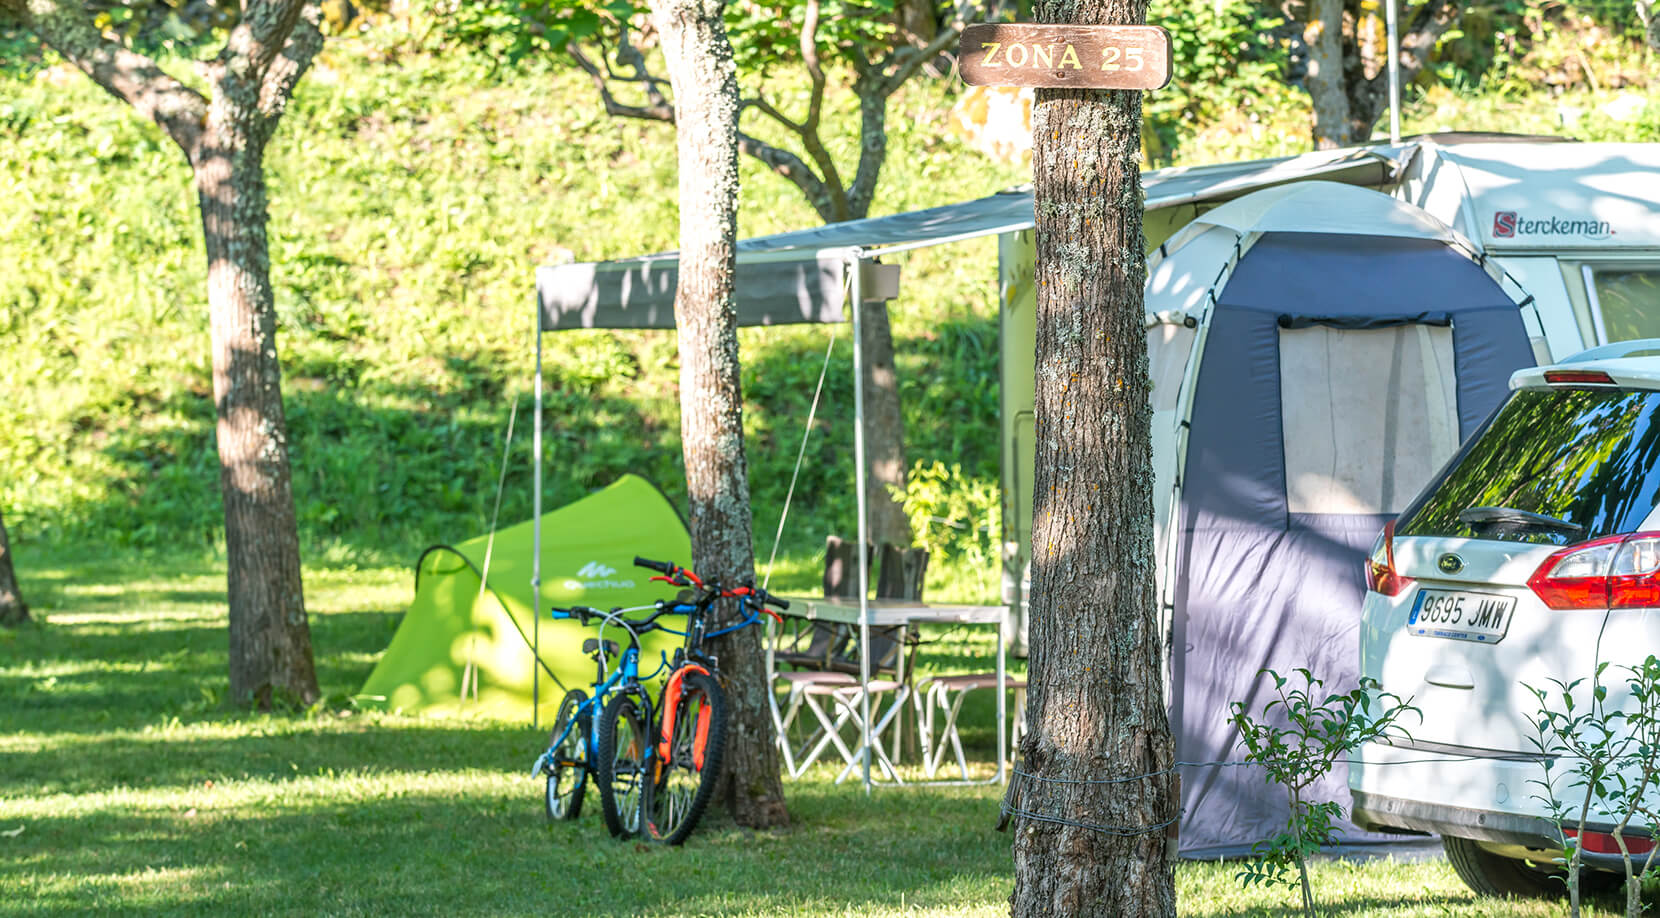 Campsite in a populated area of trees along the Garonne River